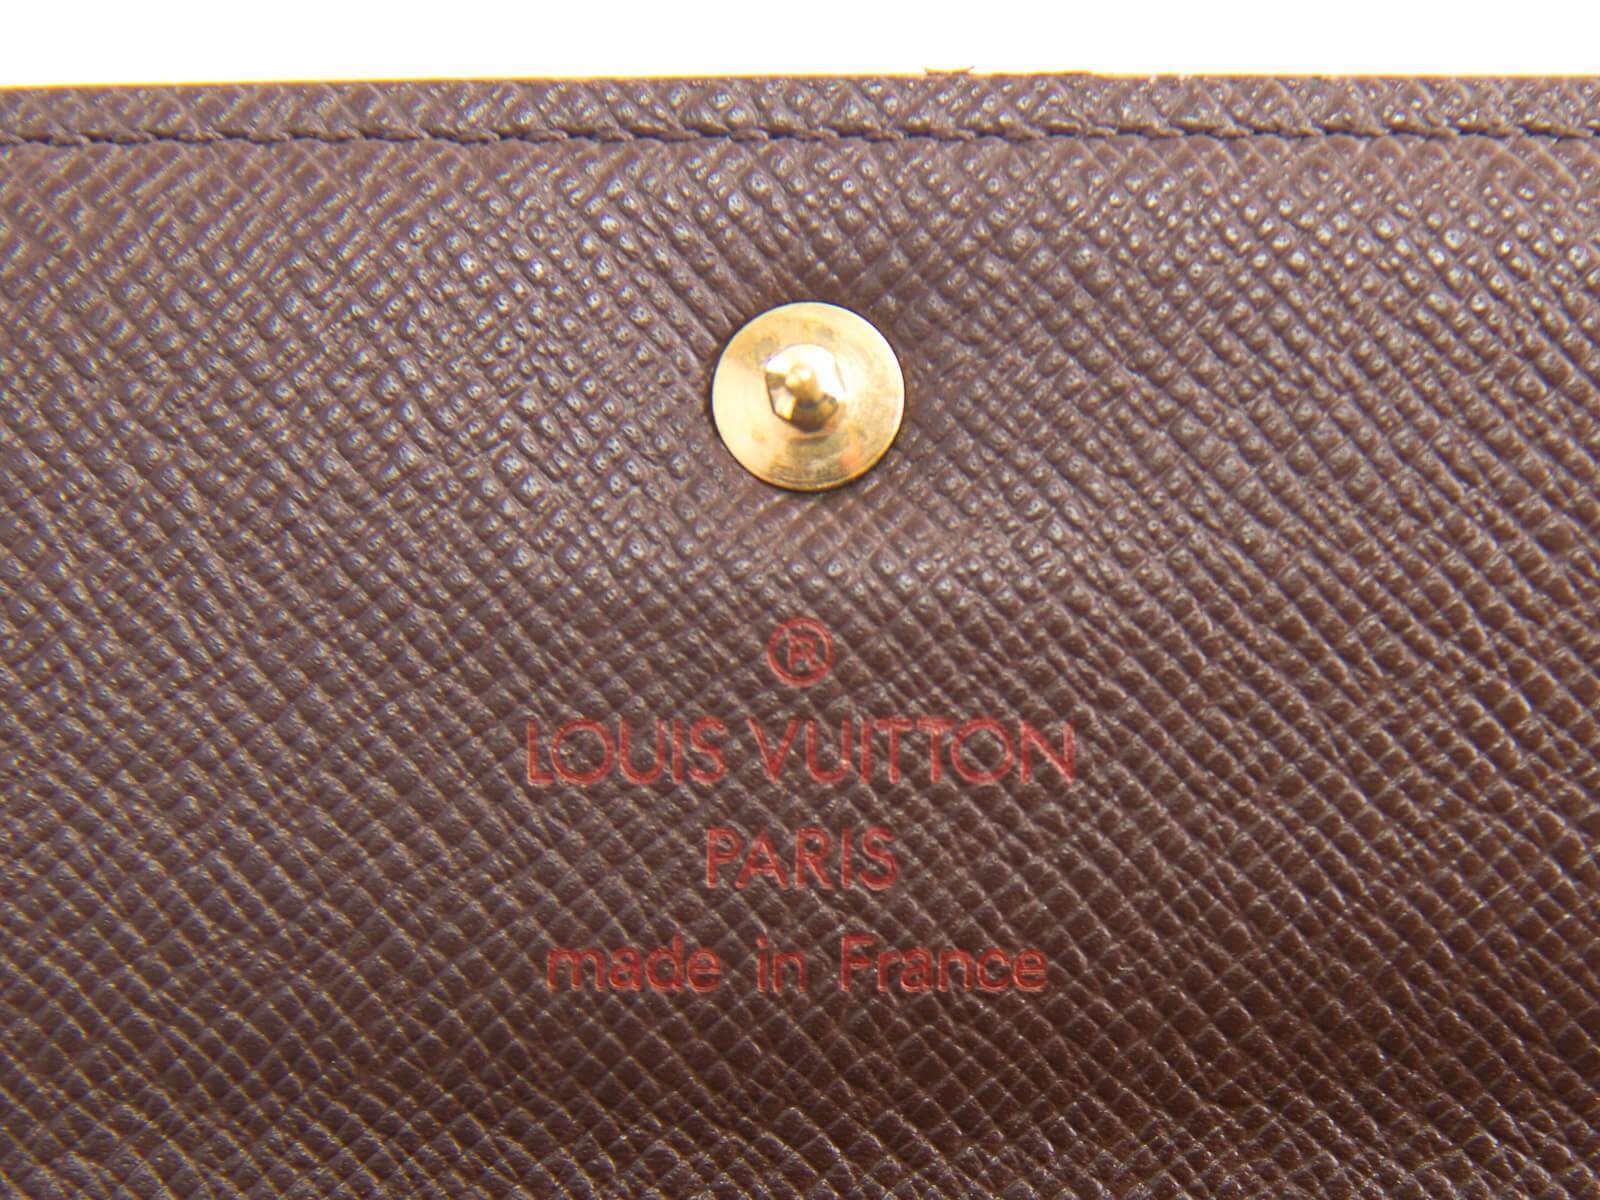 115ebb2d31a3d AUTHENTIC LOUIS VUITTON PORTE-TRESOR ETUI PAPIER WALLET N61202 ...